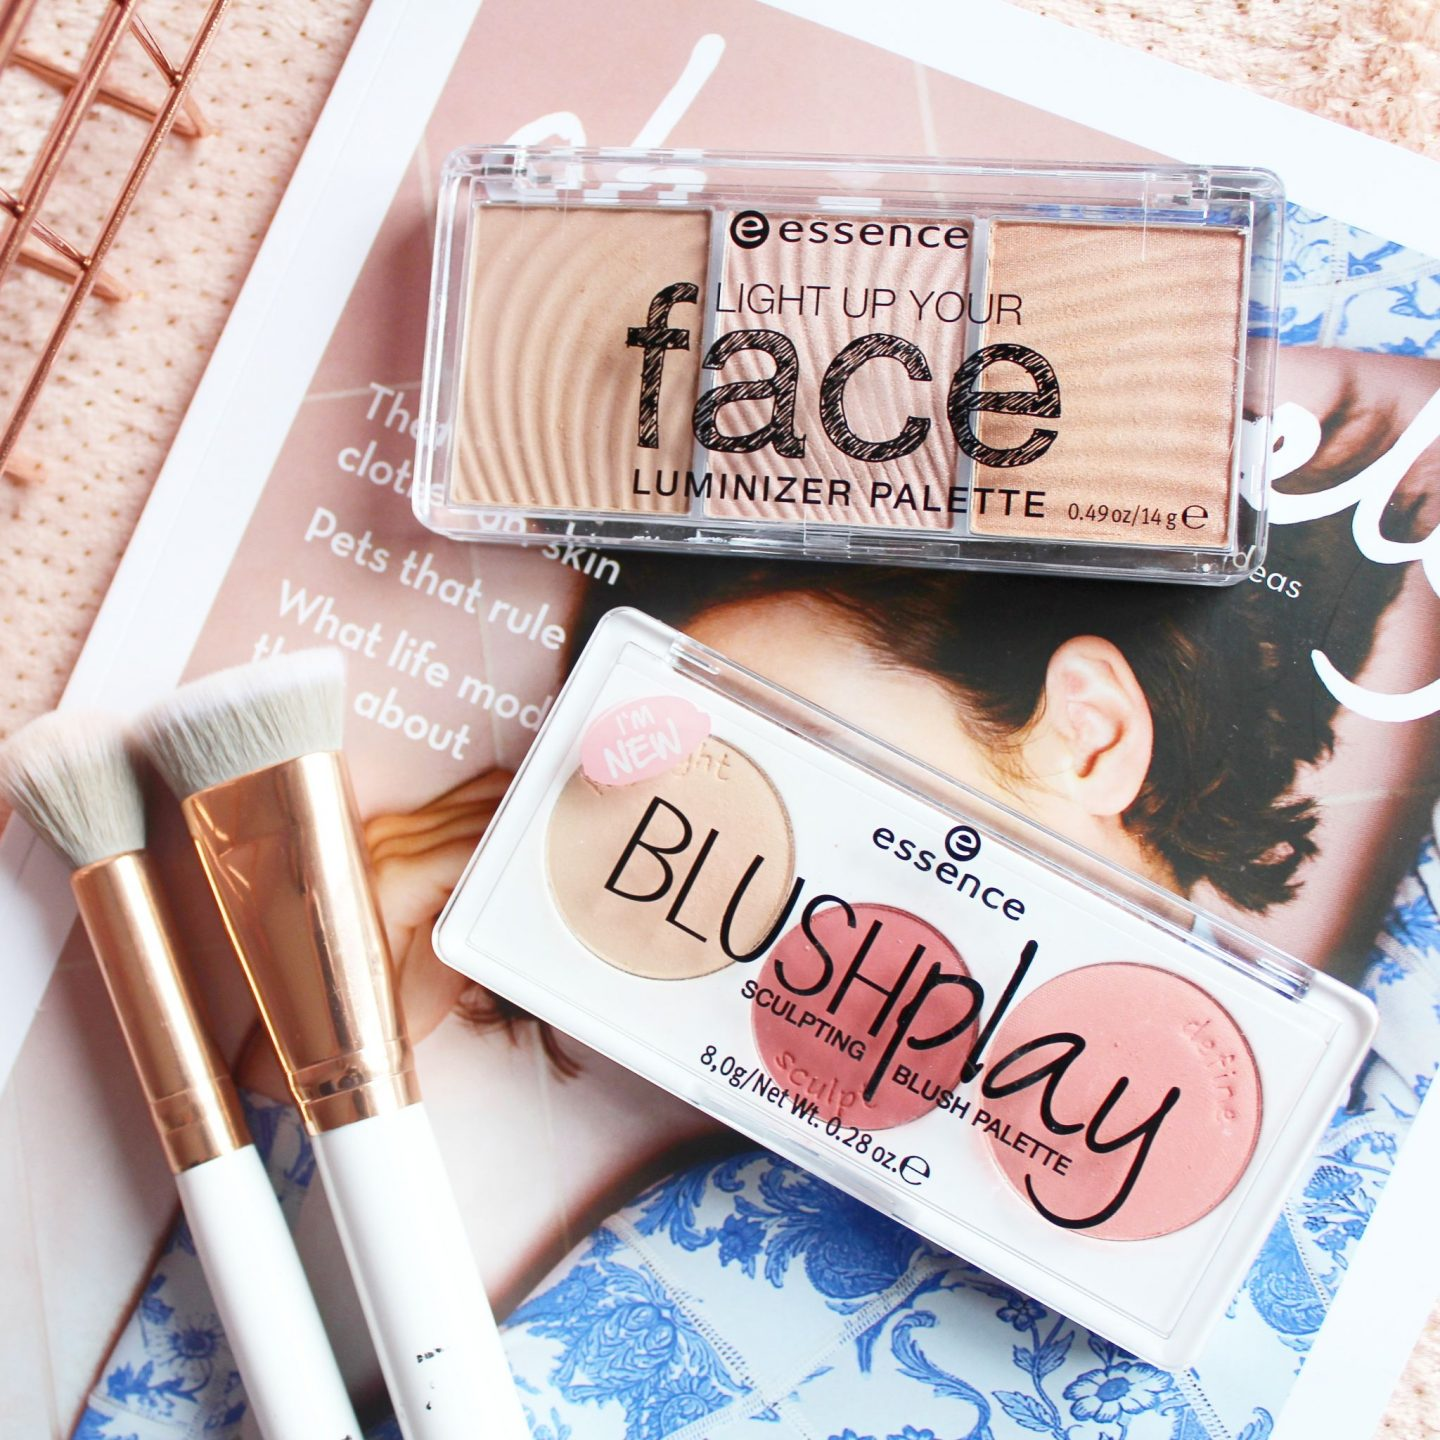 Essence Light Up Your Face & Blush Play Palettes